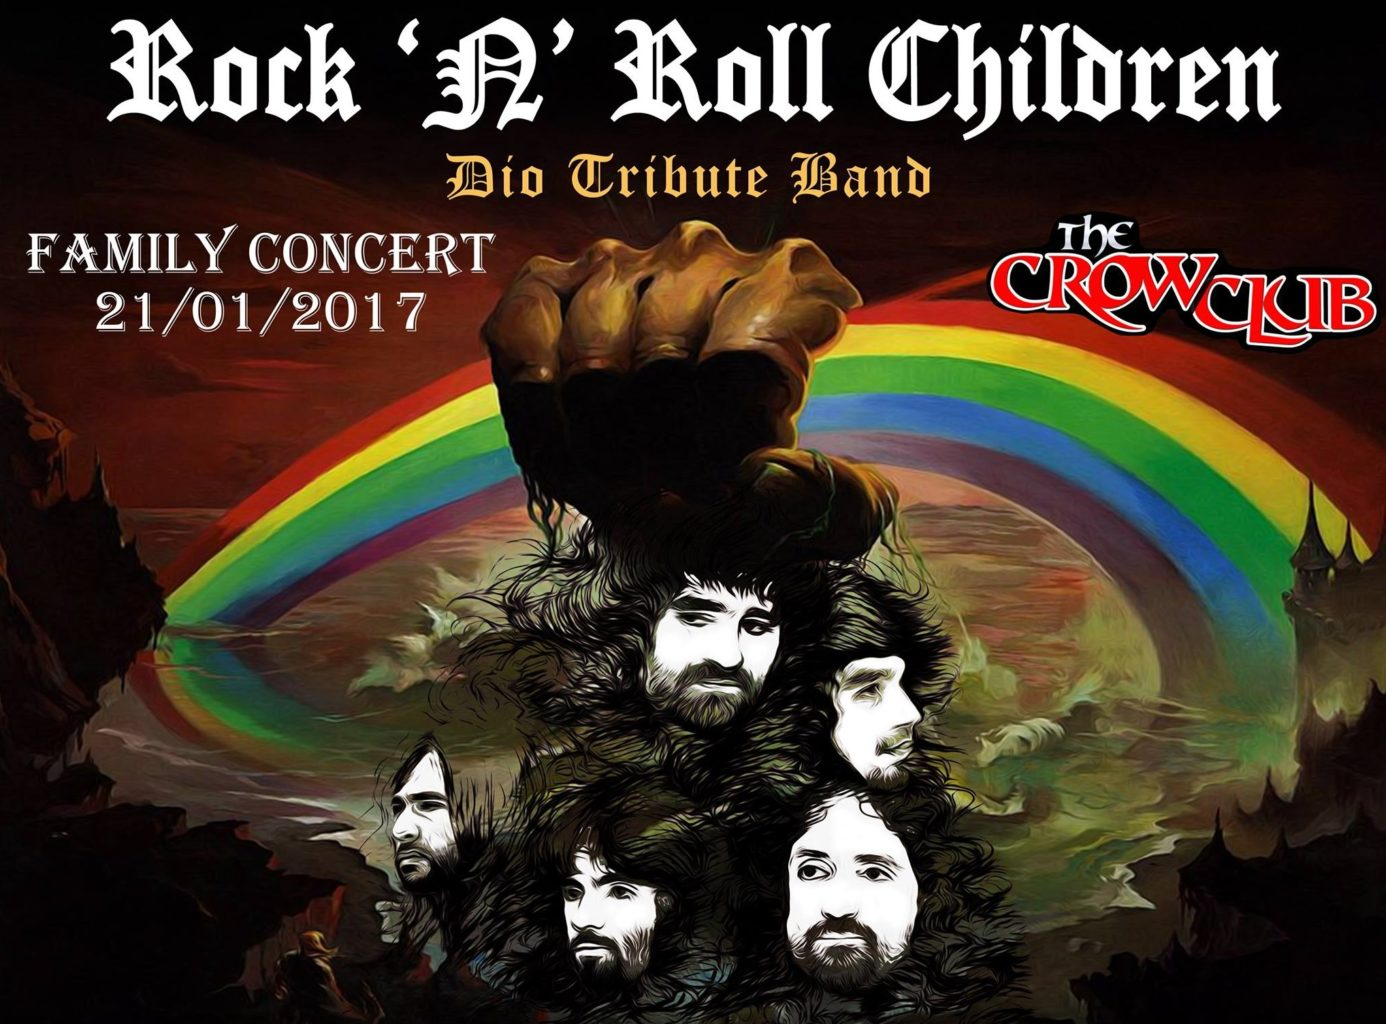 Rock 'n Roll Children family concert at The Crow Club